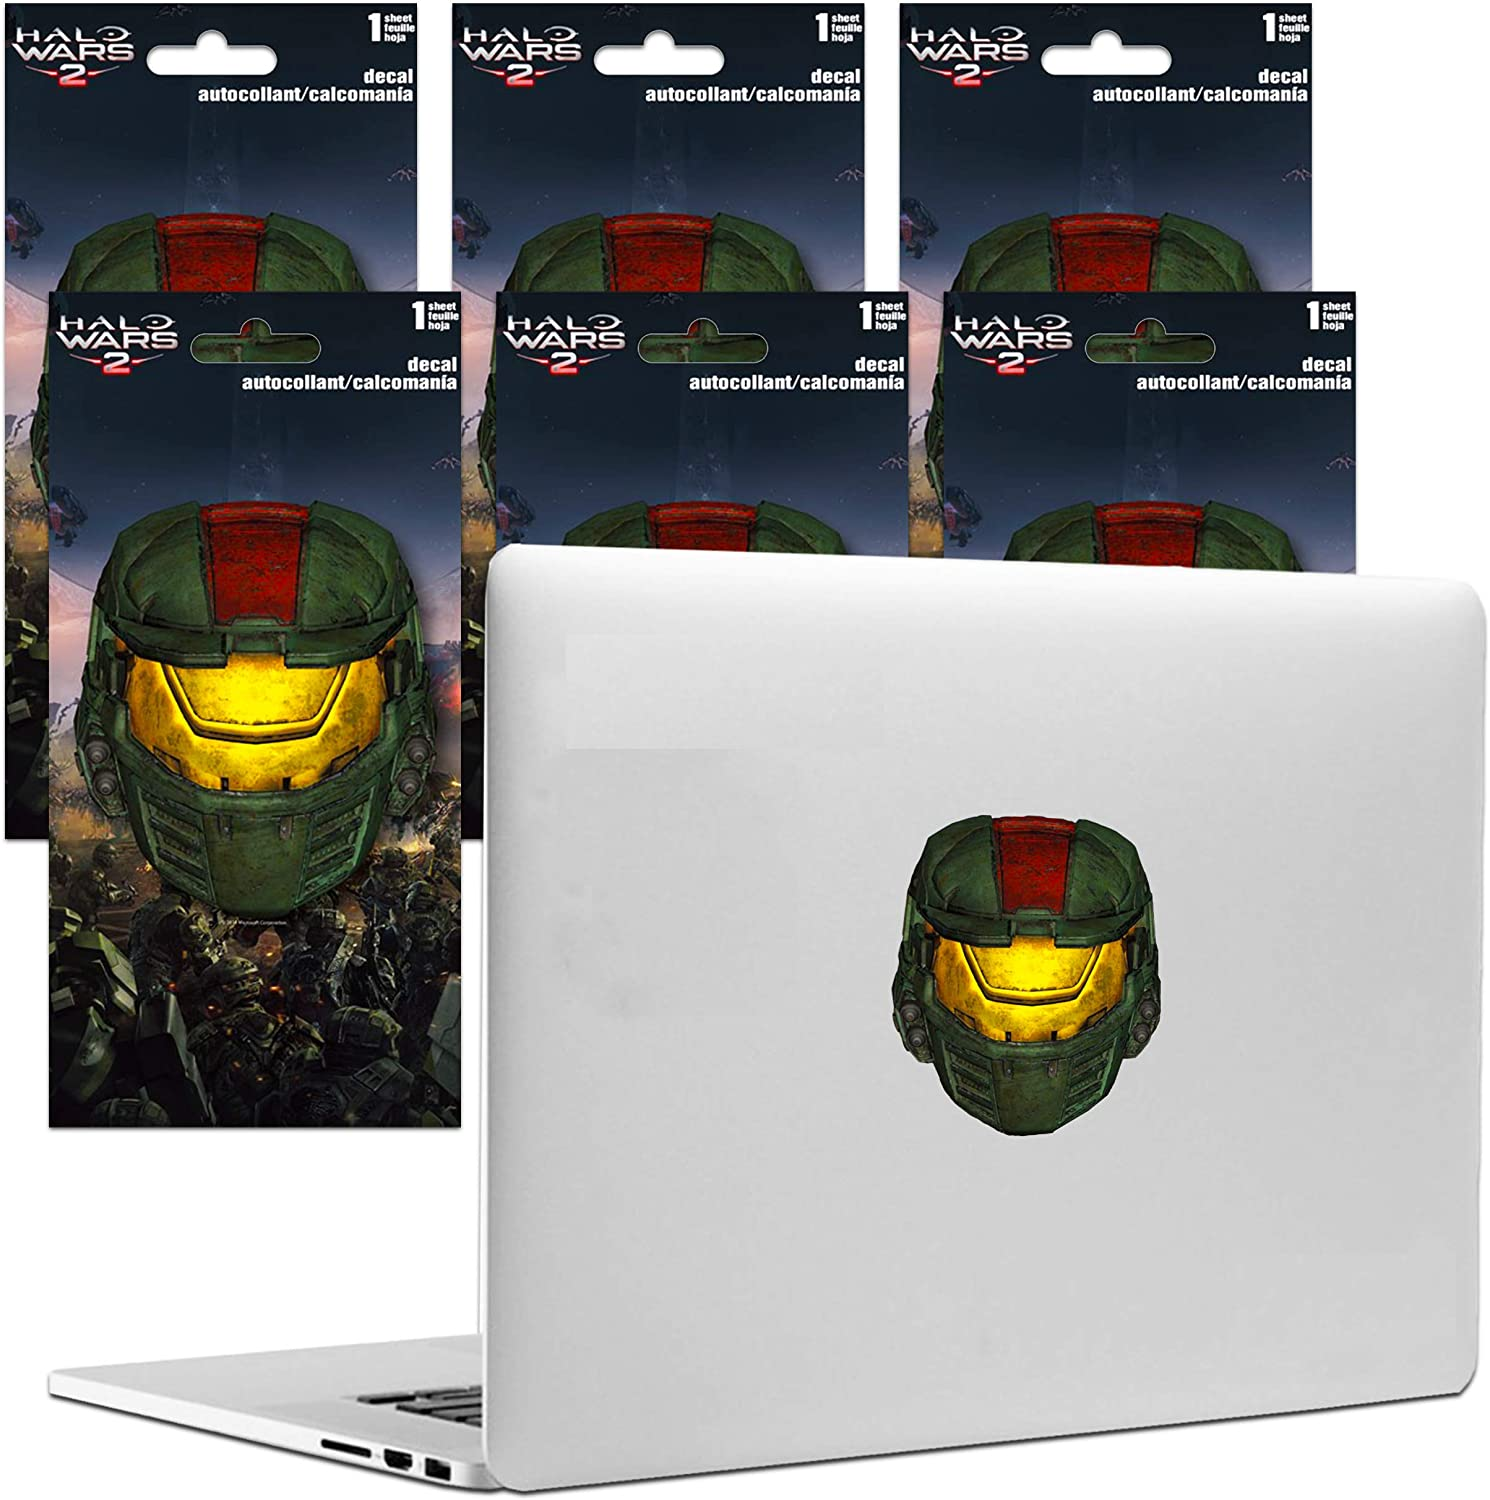 Halo Decals Party Favors Bundle Set ~ 6 Large Decal Stickers for Car, Laptop, Walls (Halo Wars Video Game Party Favors)